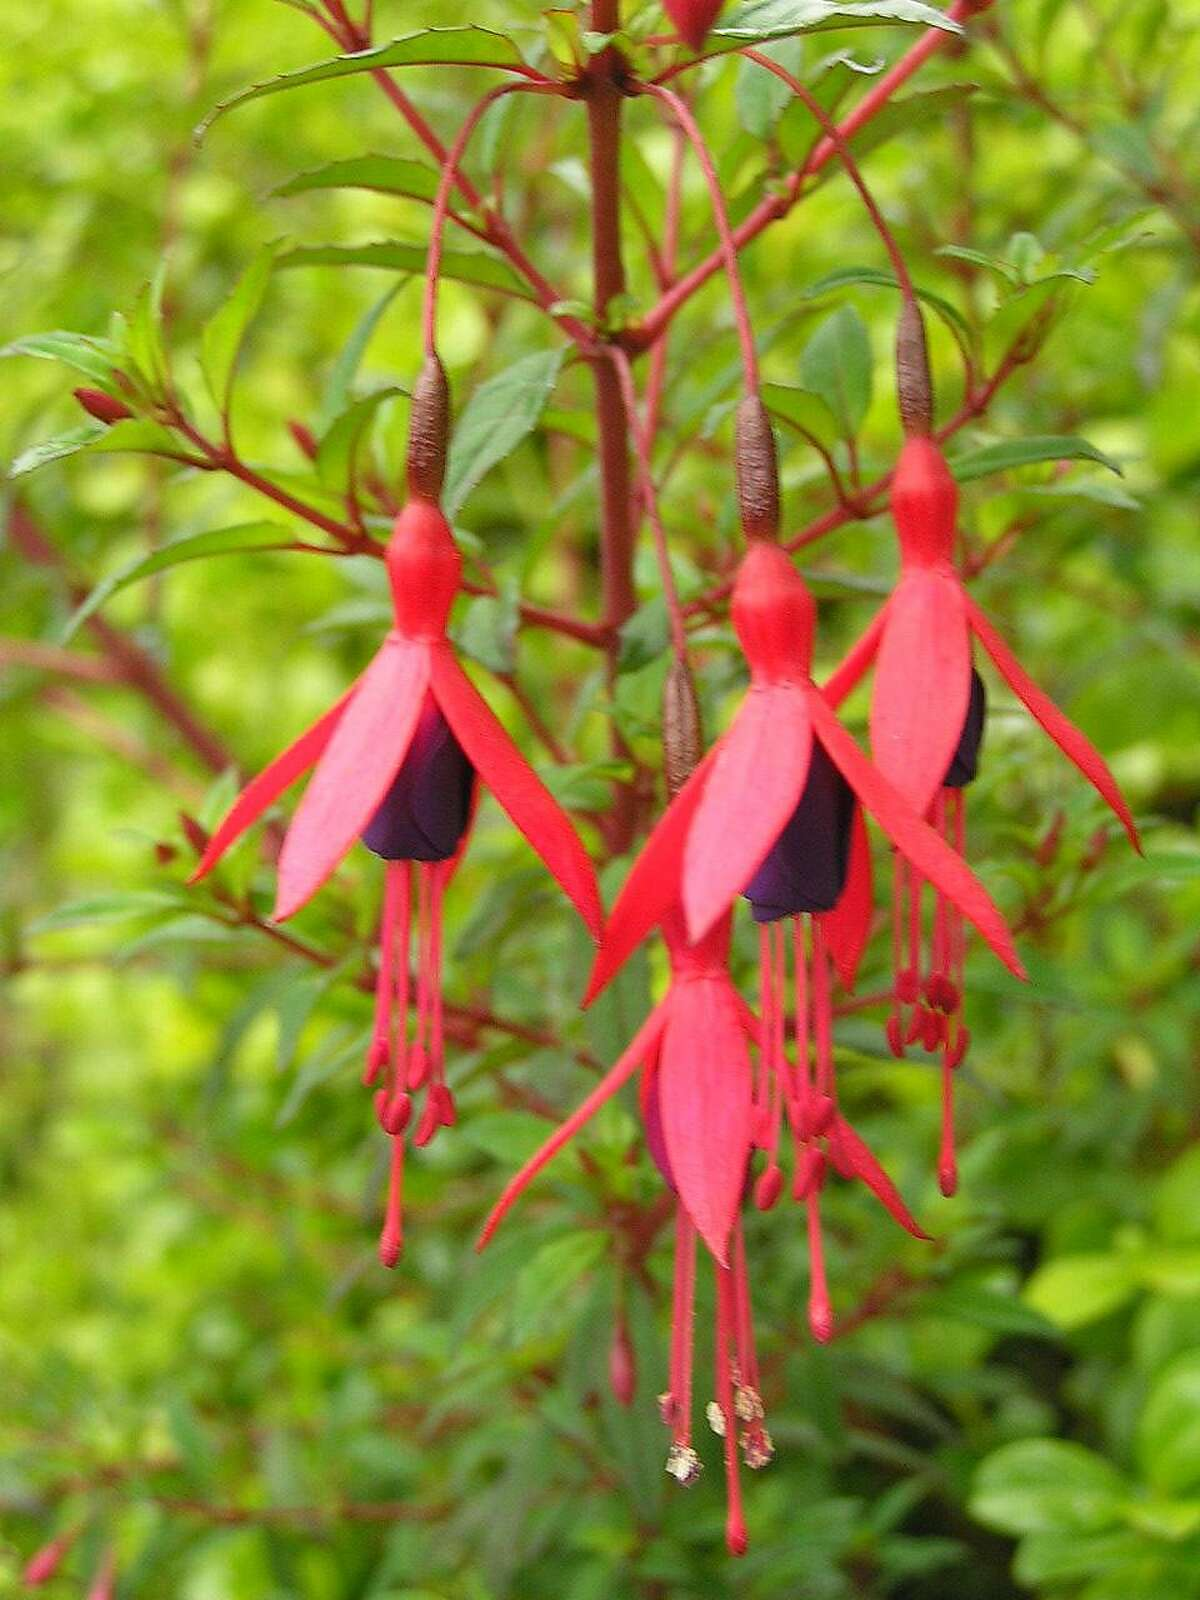 Fuschia 'Campo Thilco.' The flower of Fuschia 'Cardinal' is nearly twice as long as that of F. 'Campo Thilco.' Credit: Peter Baye Ran on: 08-30-2006 The flowers of fuchsia 'Cardinal,' left, are almost twice as long as those of 'Campo Thilco,' above. In other words, the tube of 'Cardinal' is as long as the whole flower of 'Campo Thilco.' Ran on: 08-30-2006 Ran on: 08-30-2006 Ran on: 08-30-2006